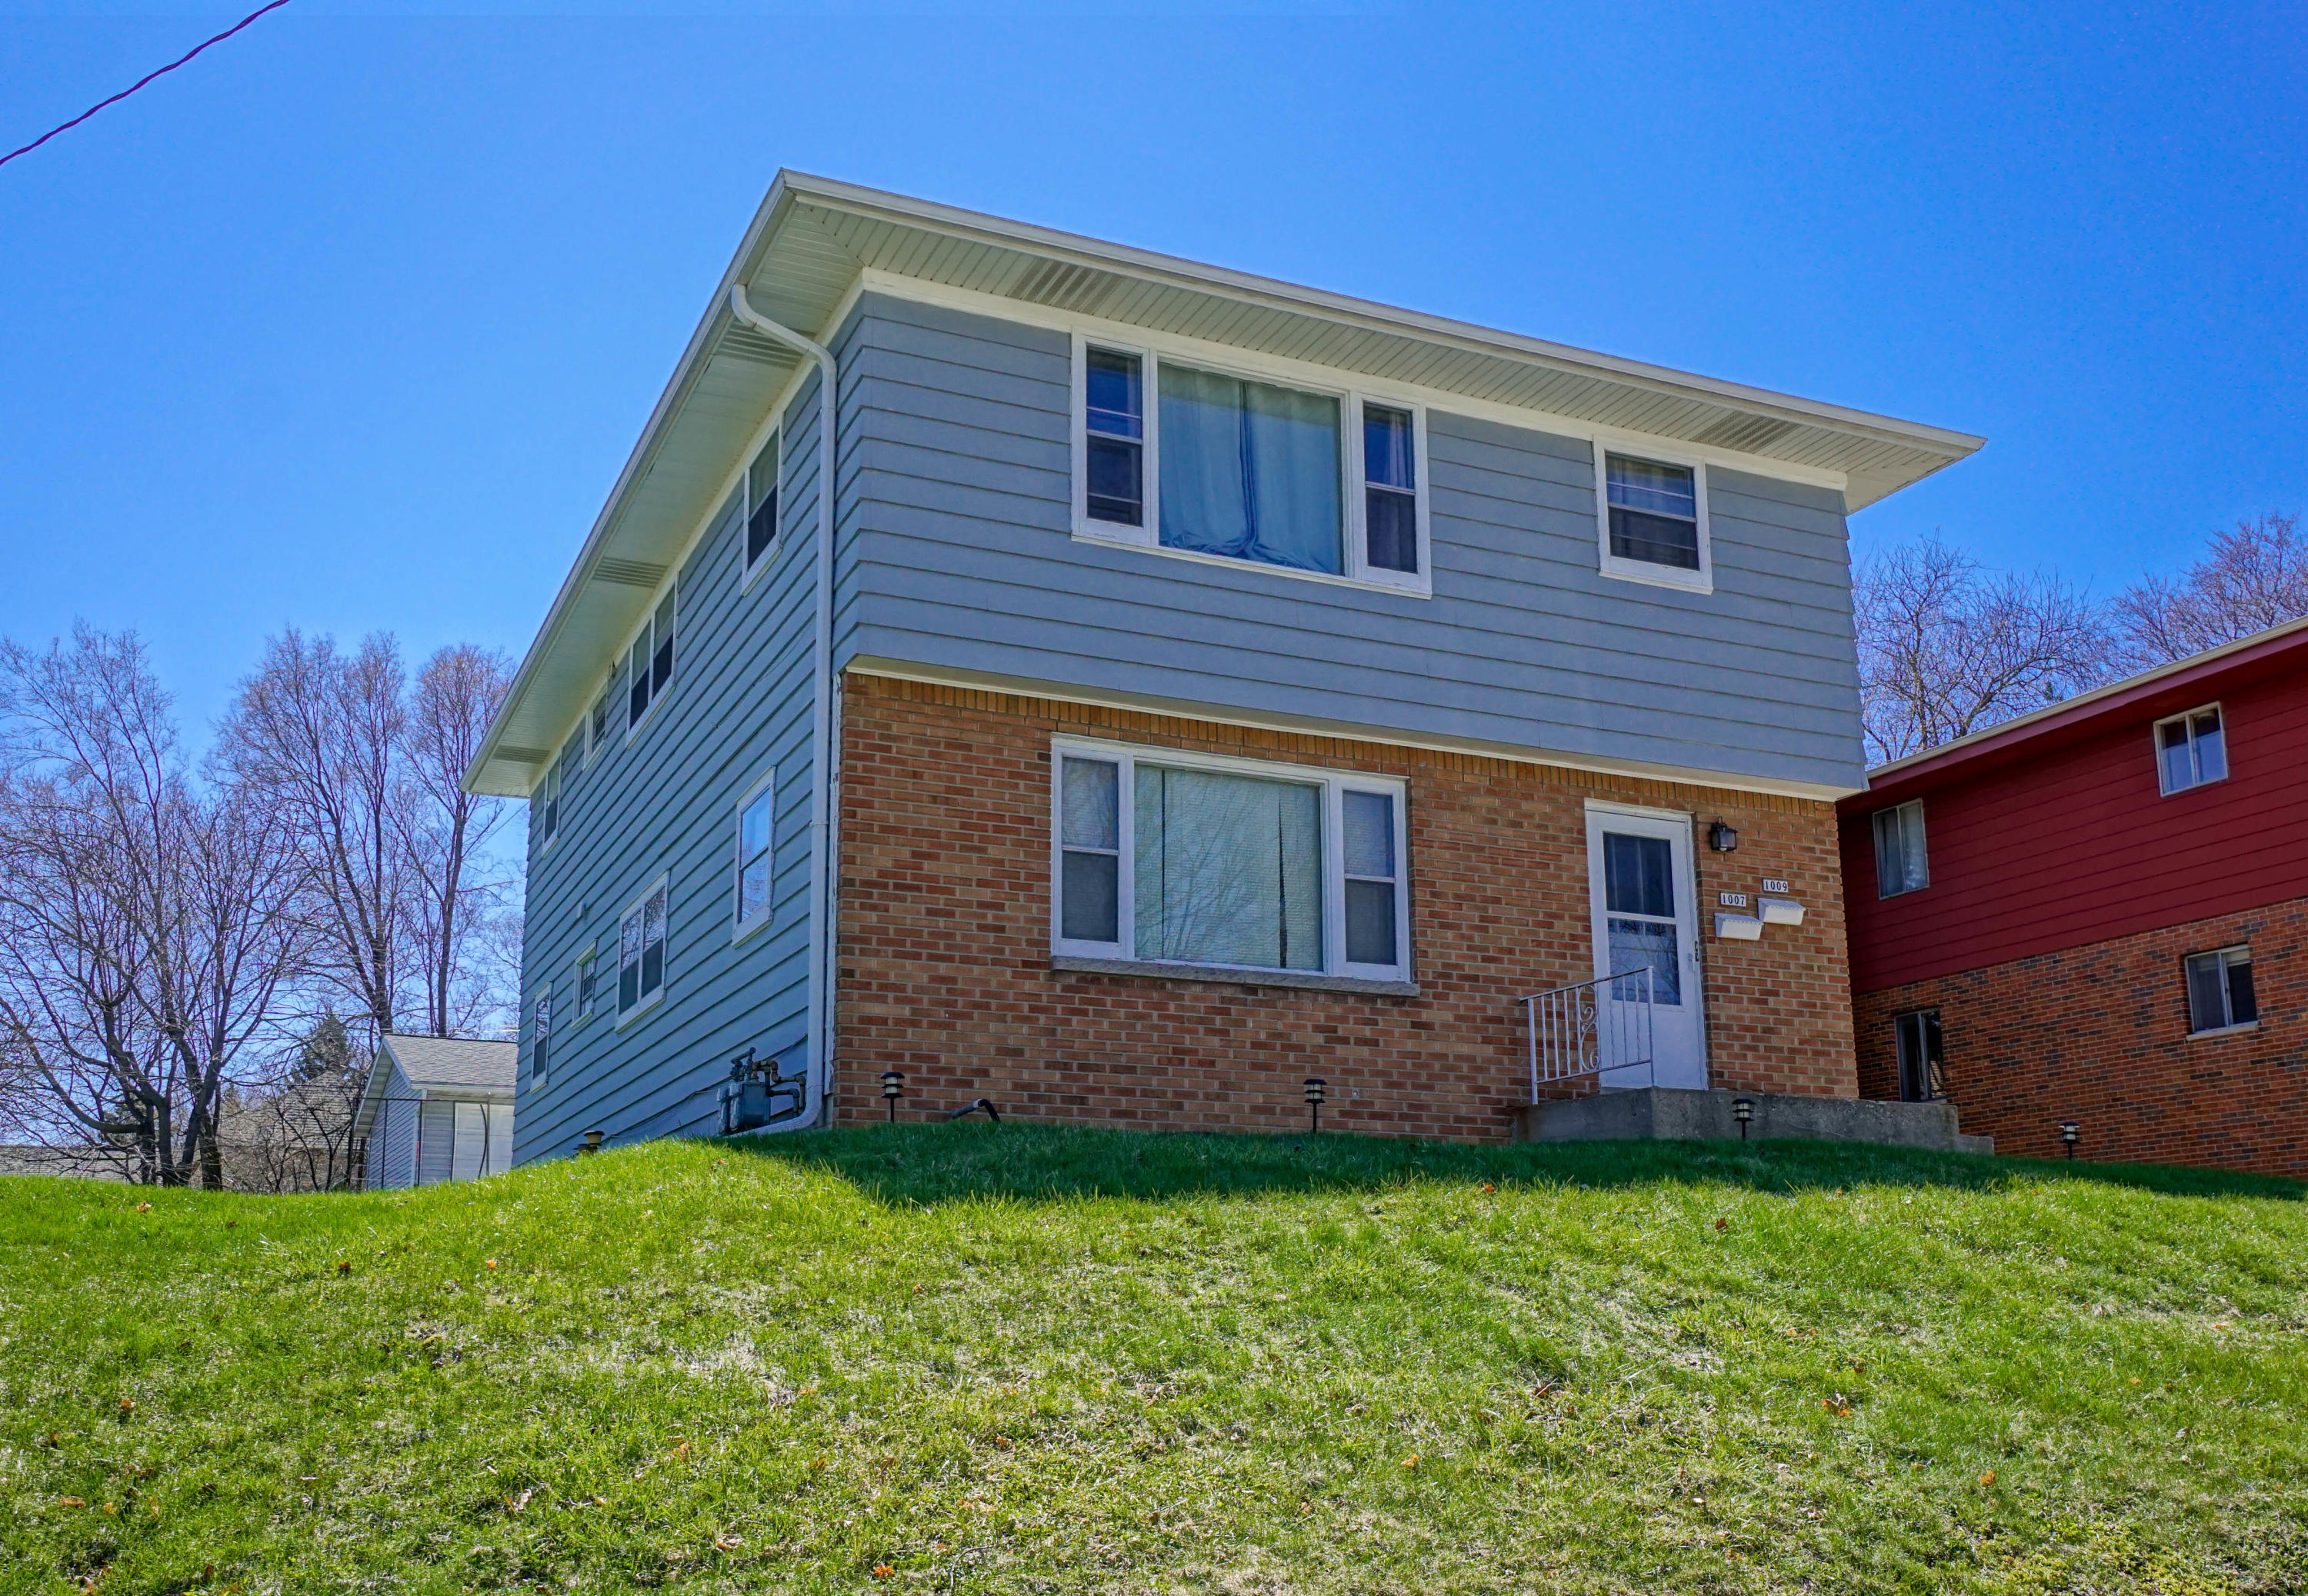 1007 Summit Ave, Waukesha, Wisconsin 53188, 3 Bedrooms Bedrooms, 5 Rooms Rooms,1 BathroomBathrooms,Two-Family,For Sale,Summit Ave,1,1685832